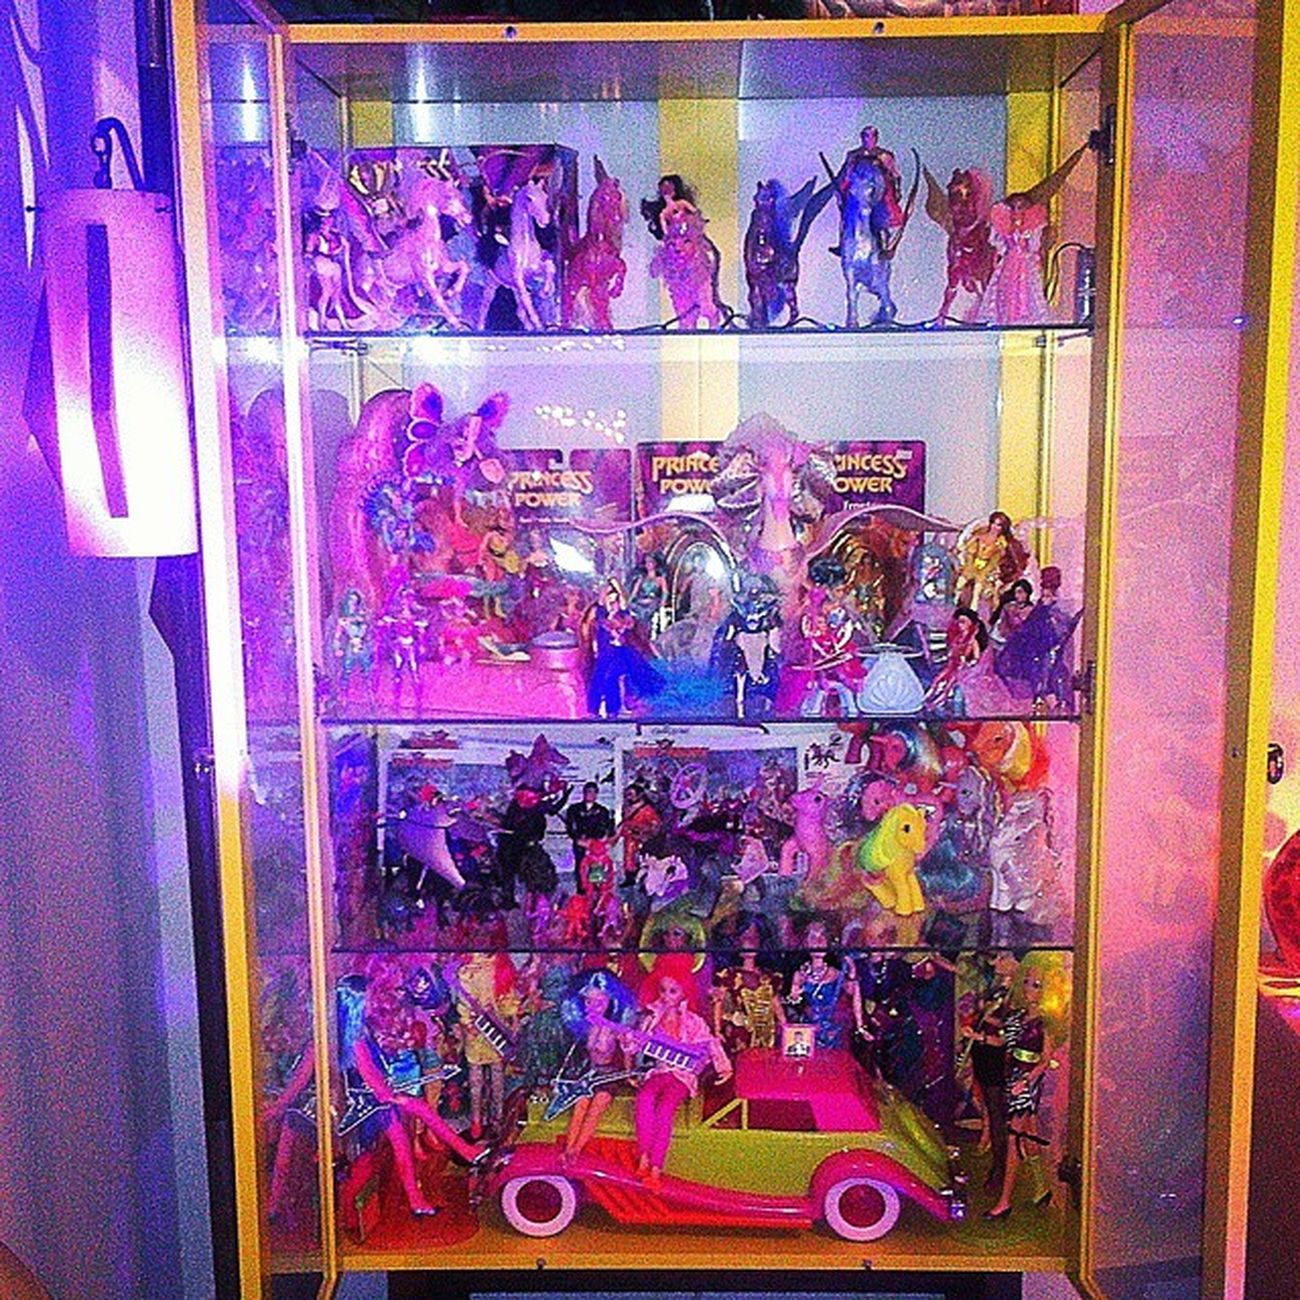 I was tagged by @toy_collecting_brothers to take a Shelfie . This is what the corner cabinet looks like at night. I'm still working on the setup, big time! Contents include: Motu , Dinoriders , Mlpg1 , Motuknockoff and Jemandtheholograms . I nominate @laarhoventoys, @pooptroop and @ninja_vanish_og to shelfie it up! I would nominate @jaimetheteleviper, but he tagged me weeks ago to do an audio-something and I haven't yet done so. Boo... 80stoys Vintagetoys Vintagedolls Vintageactionfigures Toycrewbuddies Toycollector 80spopculture Mattycollector Hasbro Tyco Toycollection Princessofpower Mattel Toypics Shera